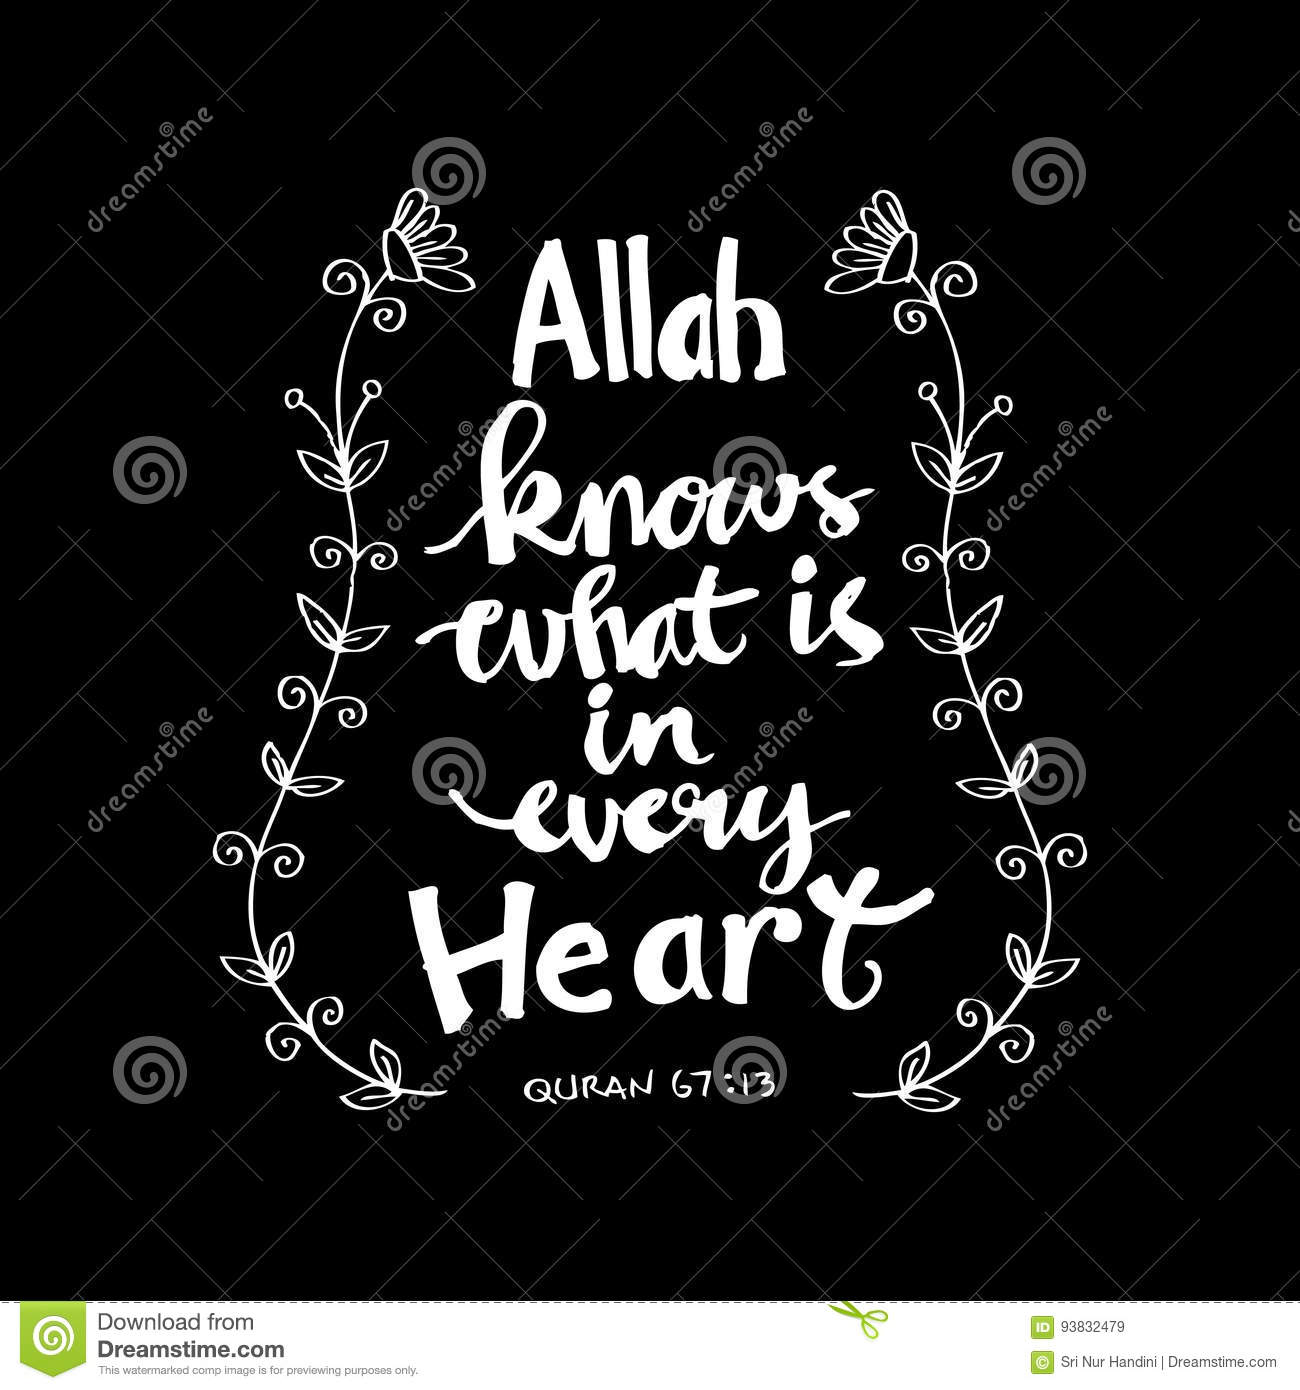 Quotes Quran Allah Knows What Is In Every Heartislamic Quran Quotes Stock